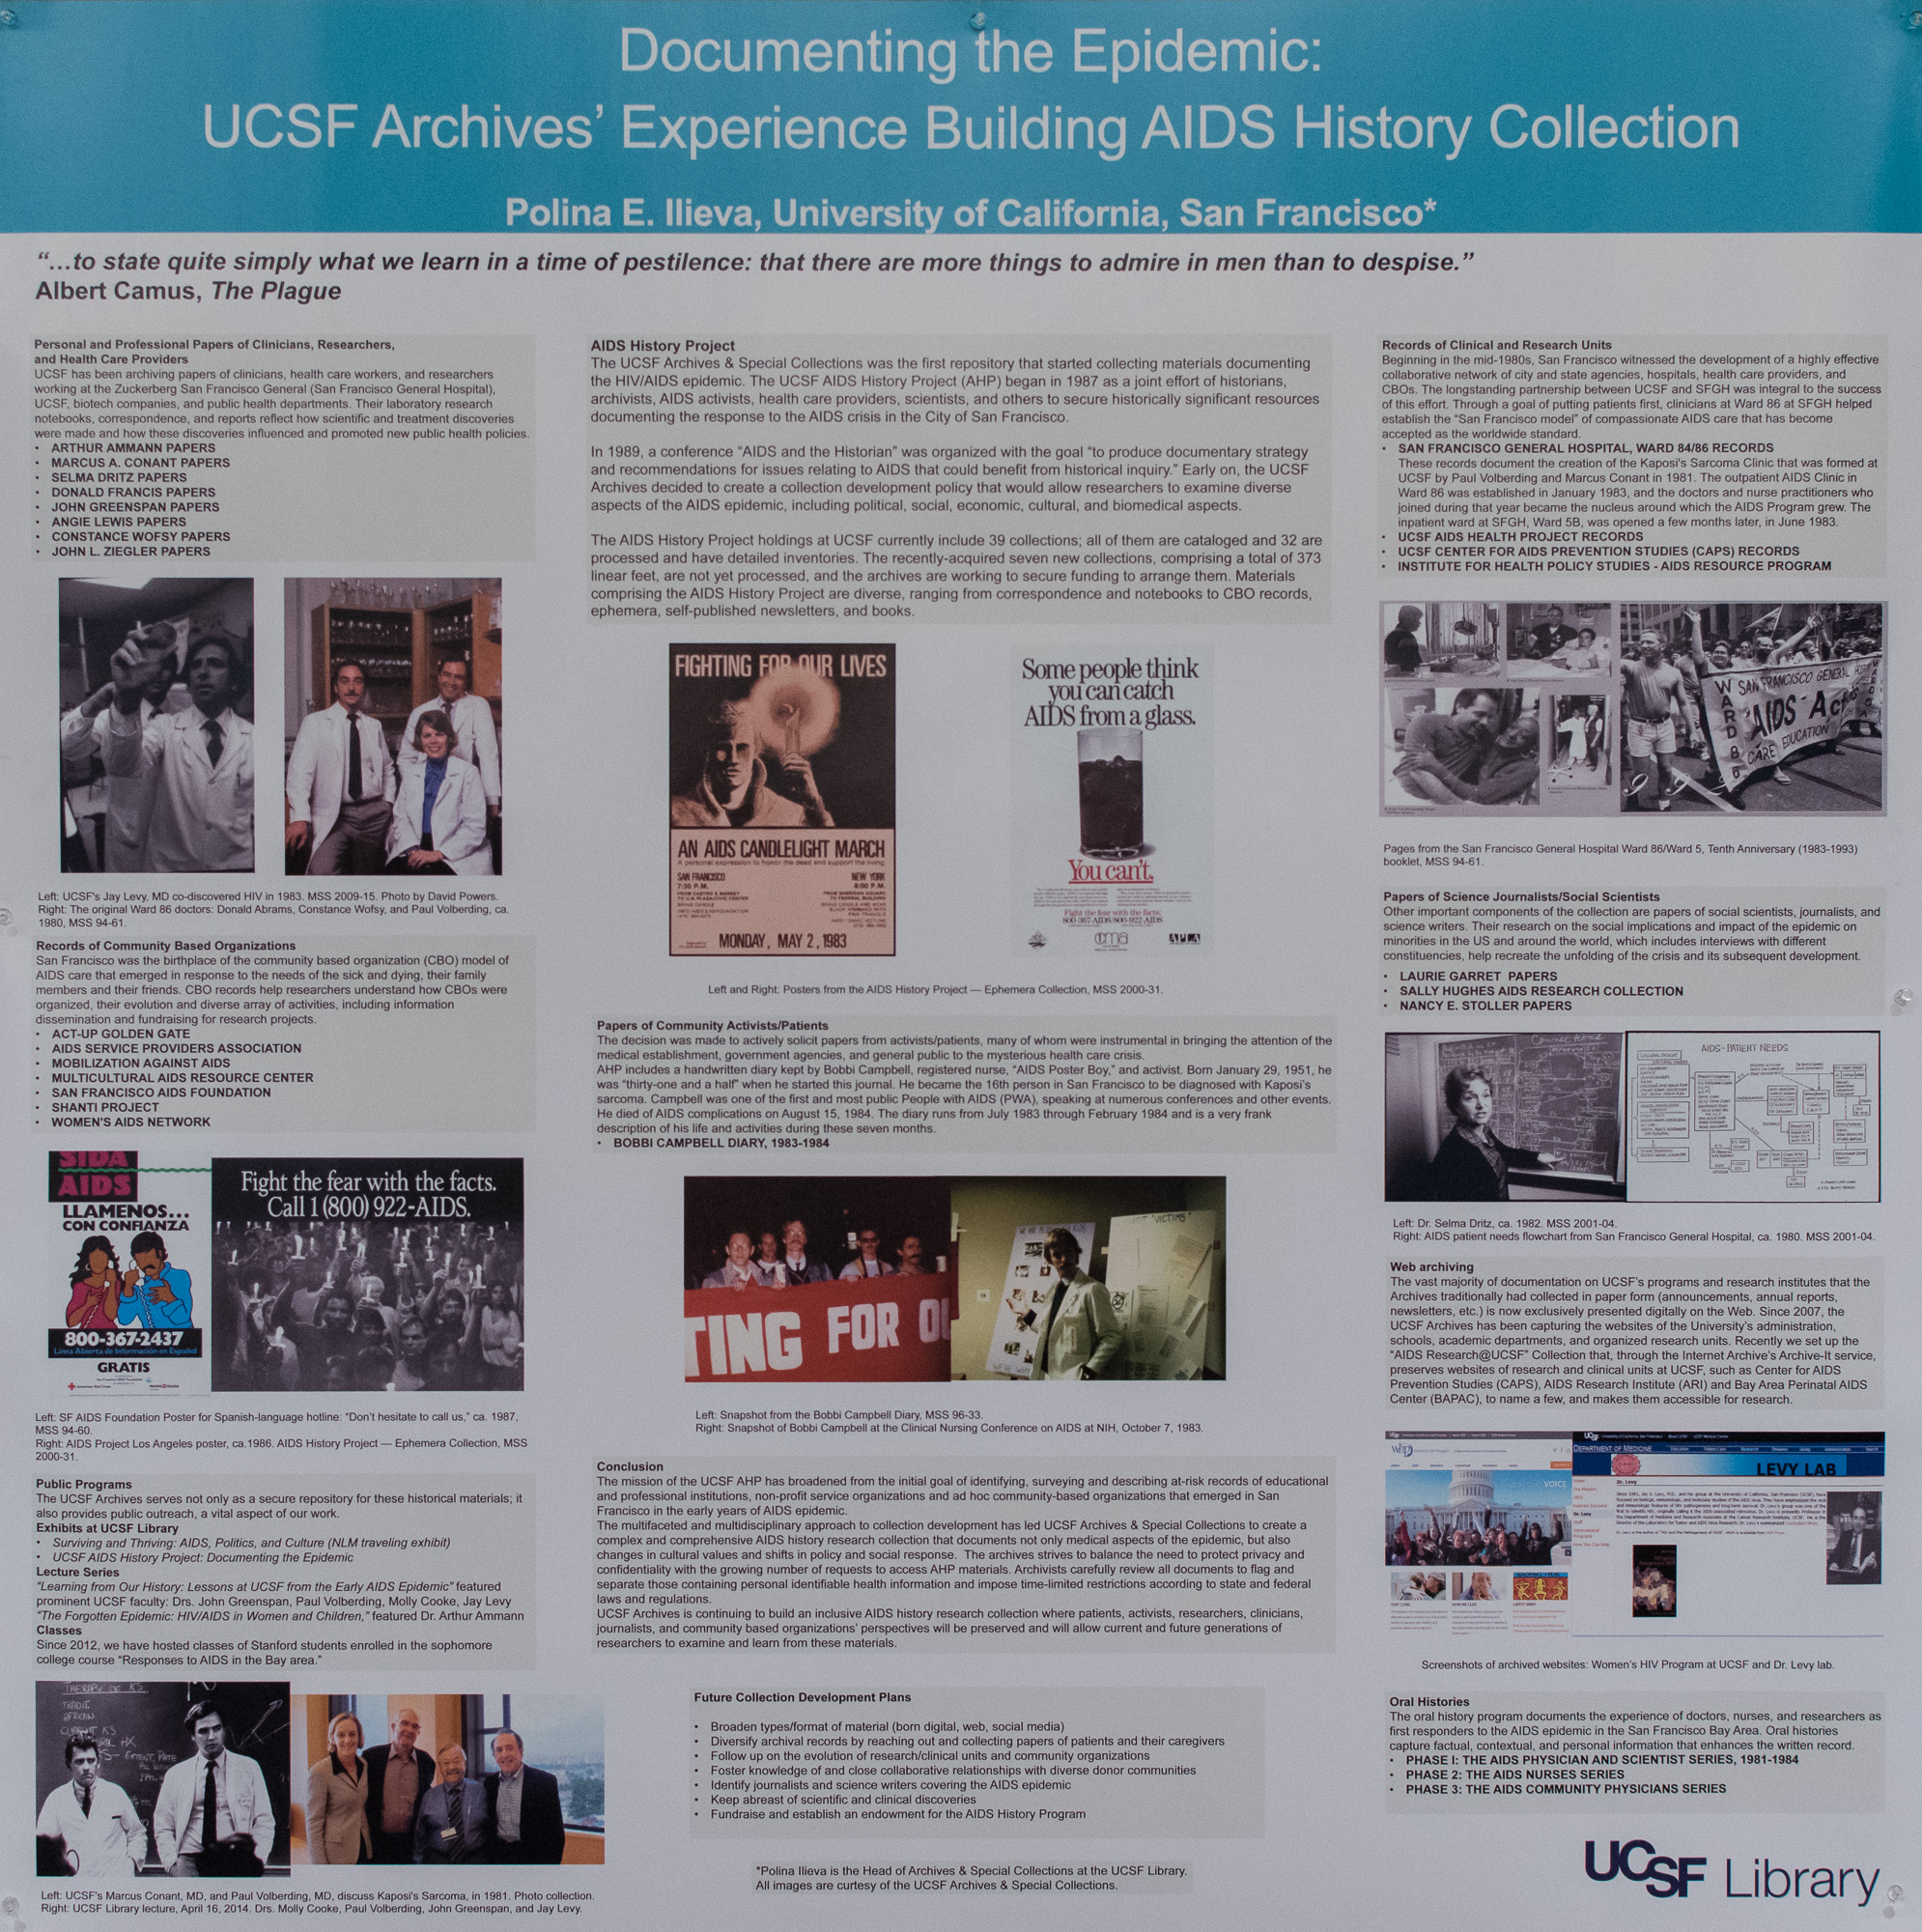 HIV/AIDS Research: Its History and Future - Posters